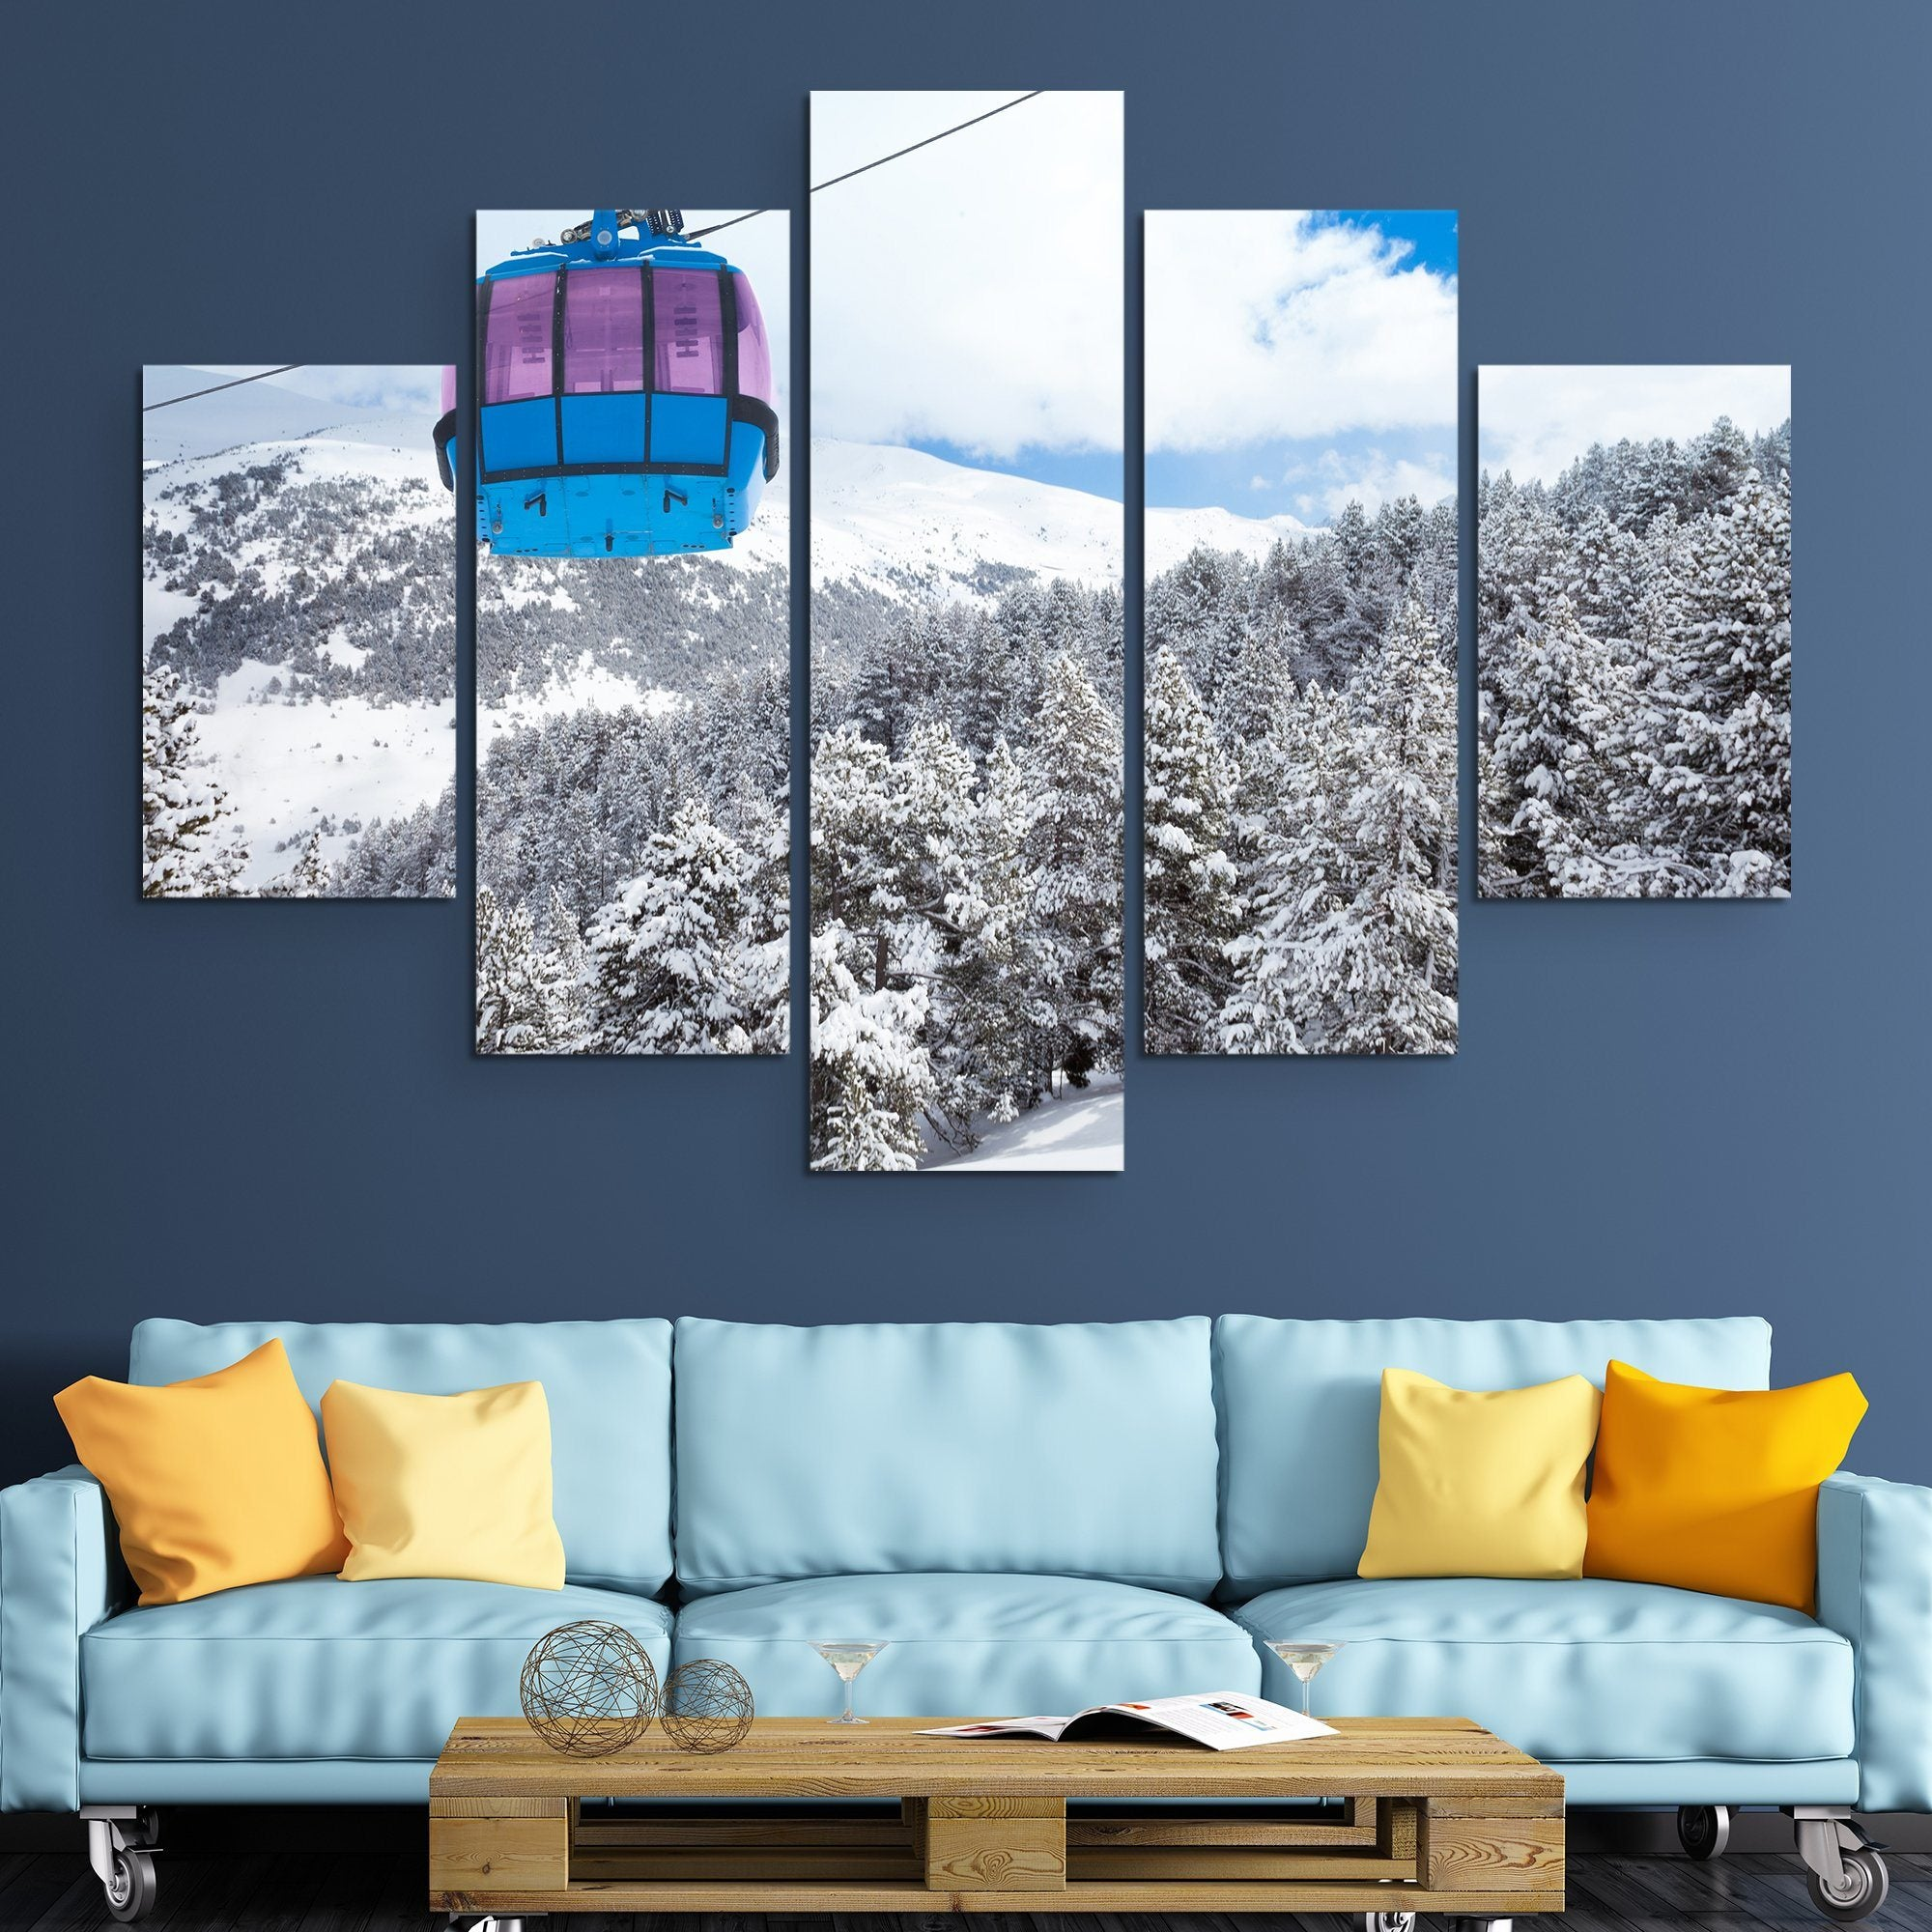 5 piece Cable Car wall art